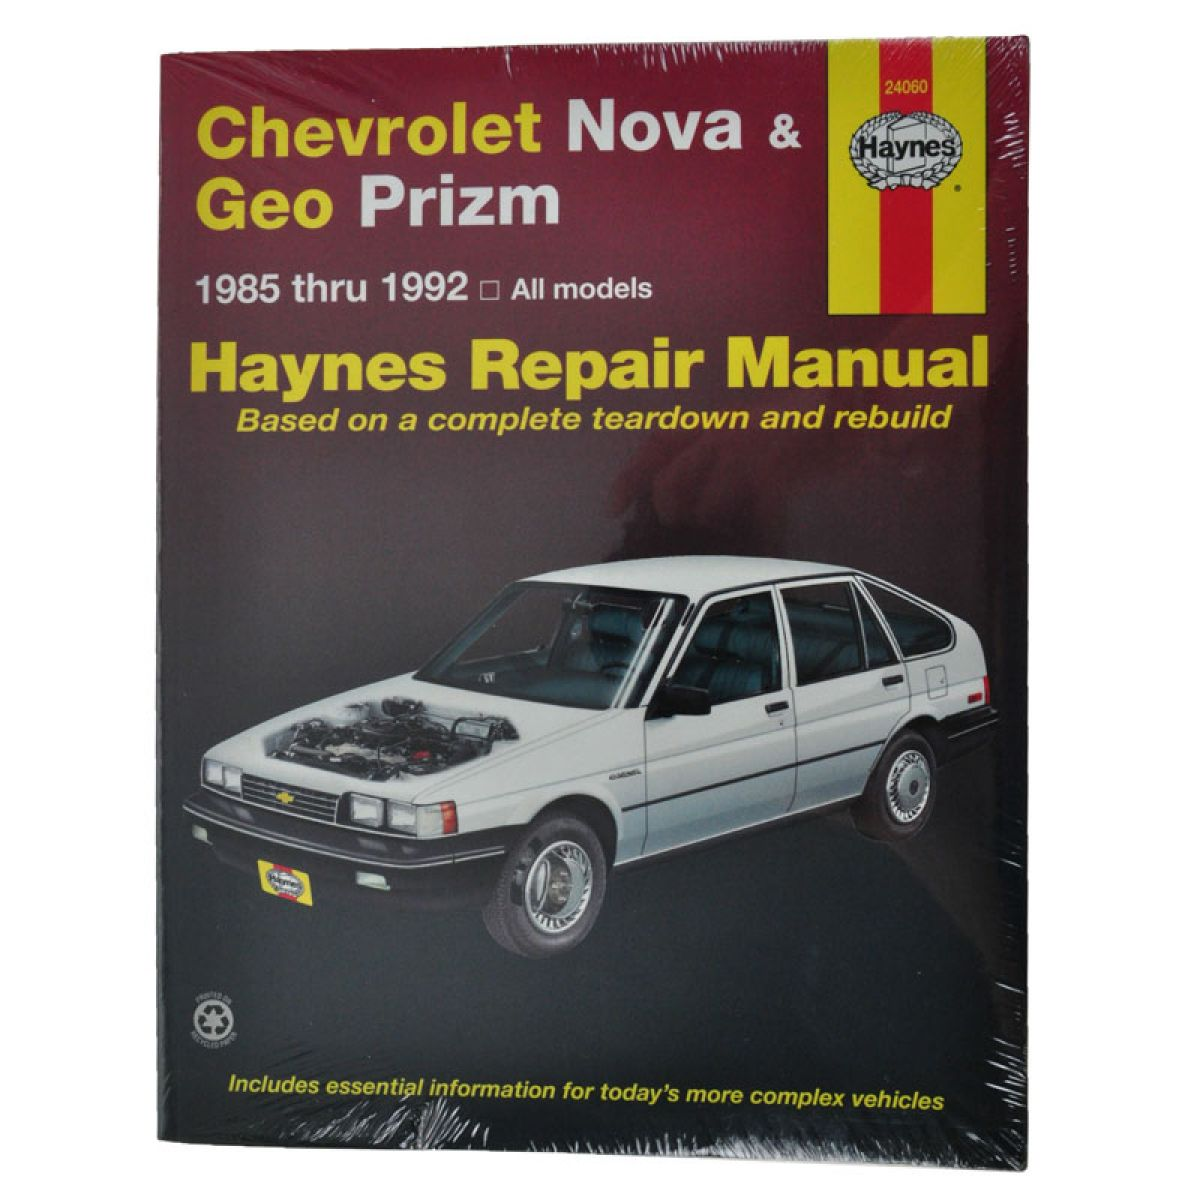 hight resolution of haynes repair manual for geo prizm chevy nova